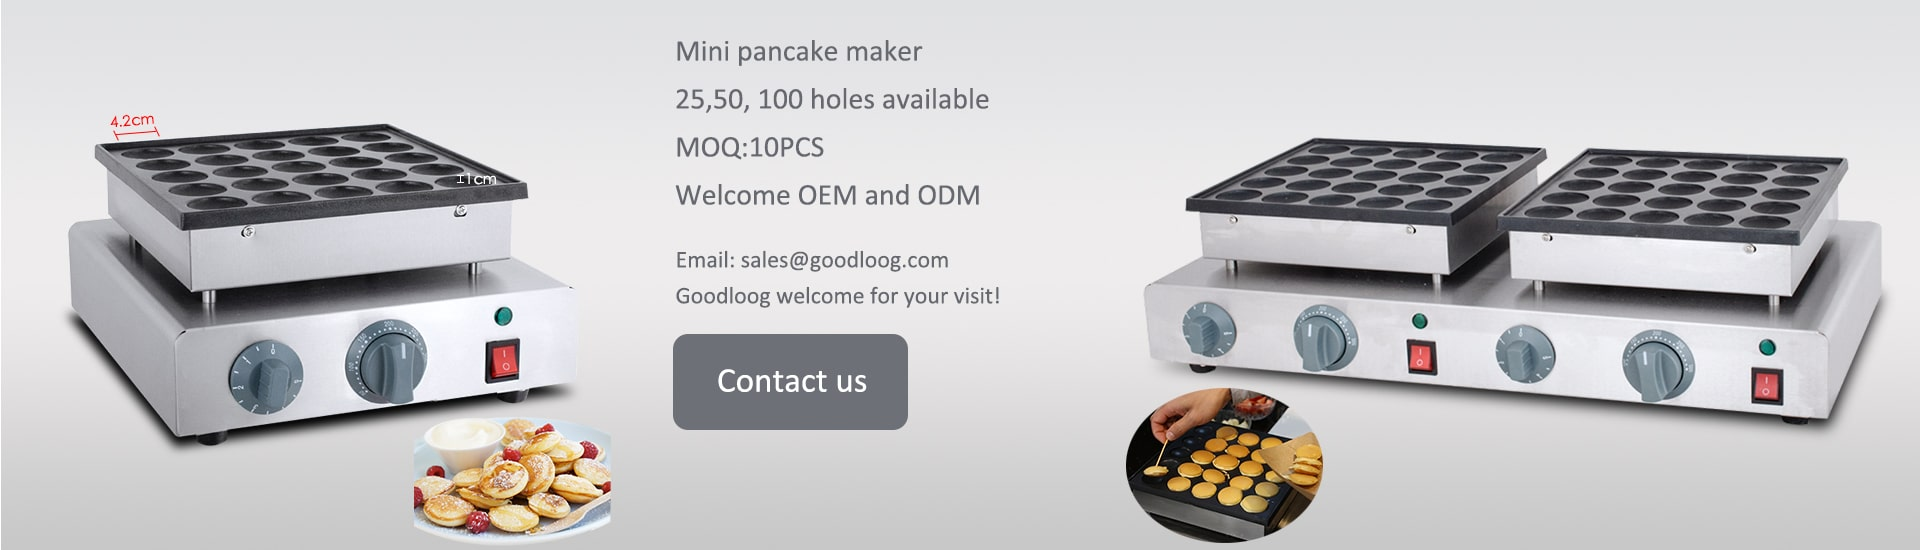 Mini Pancake Machine for sale